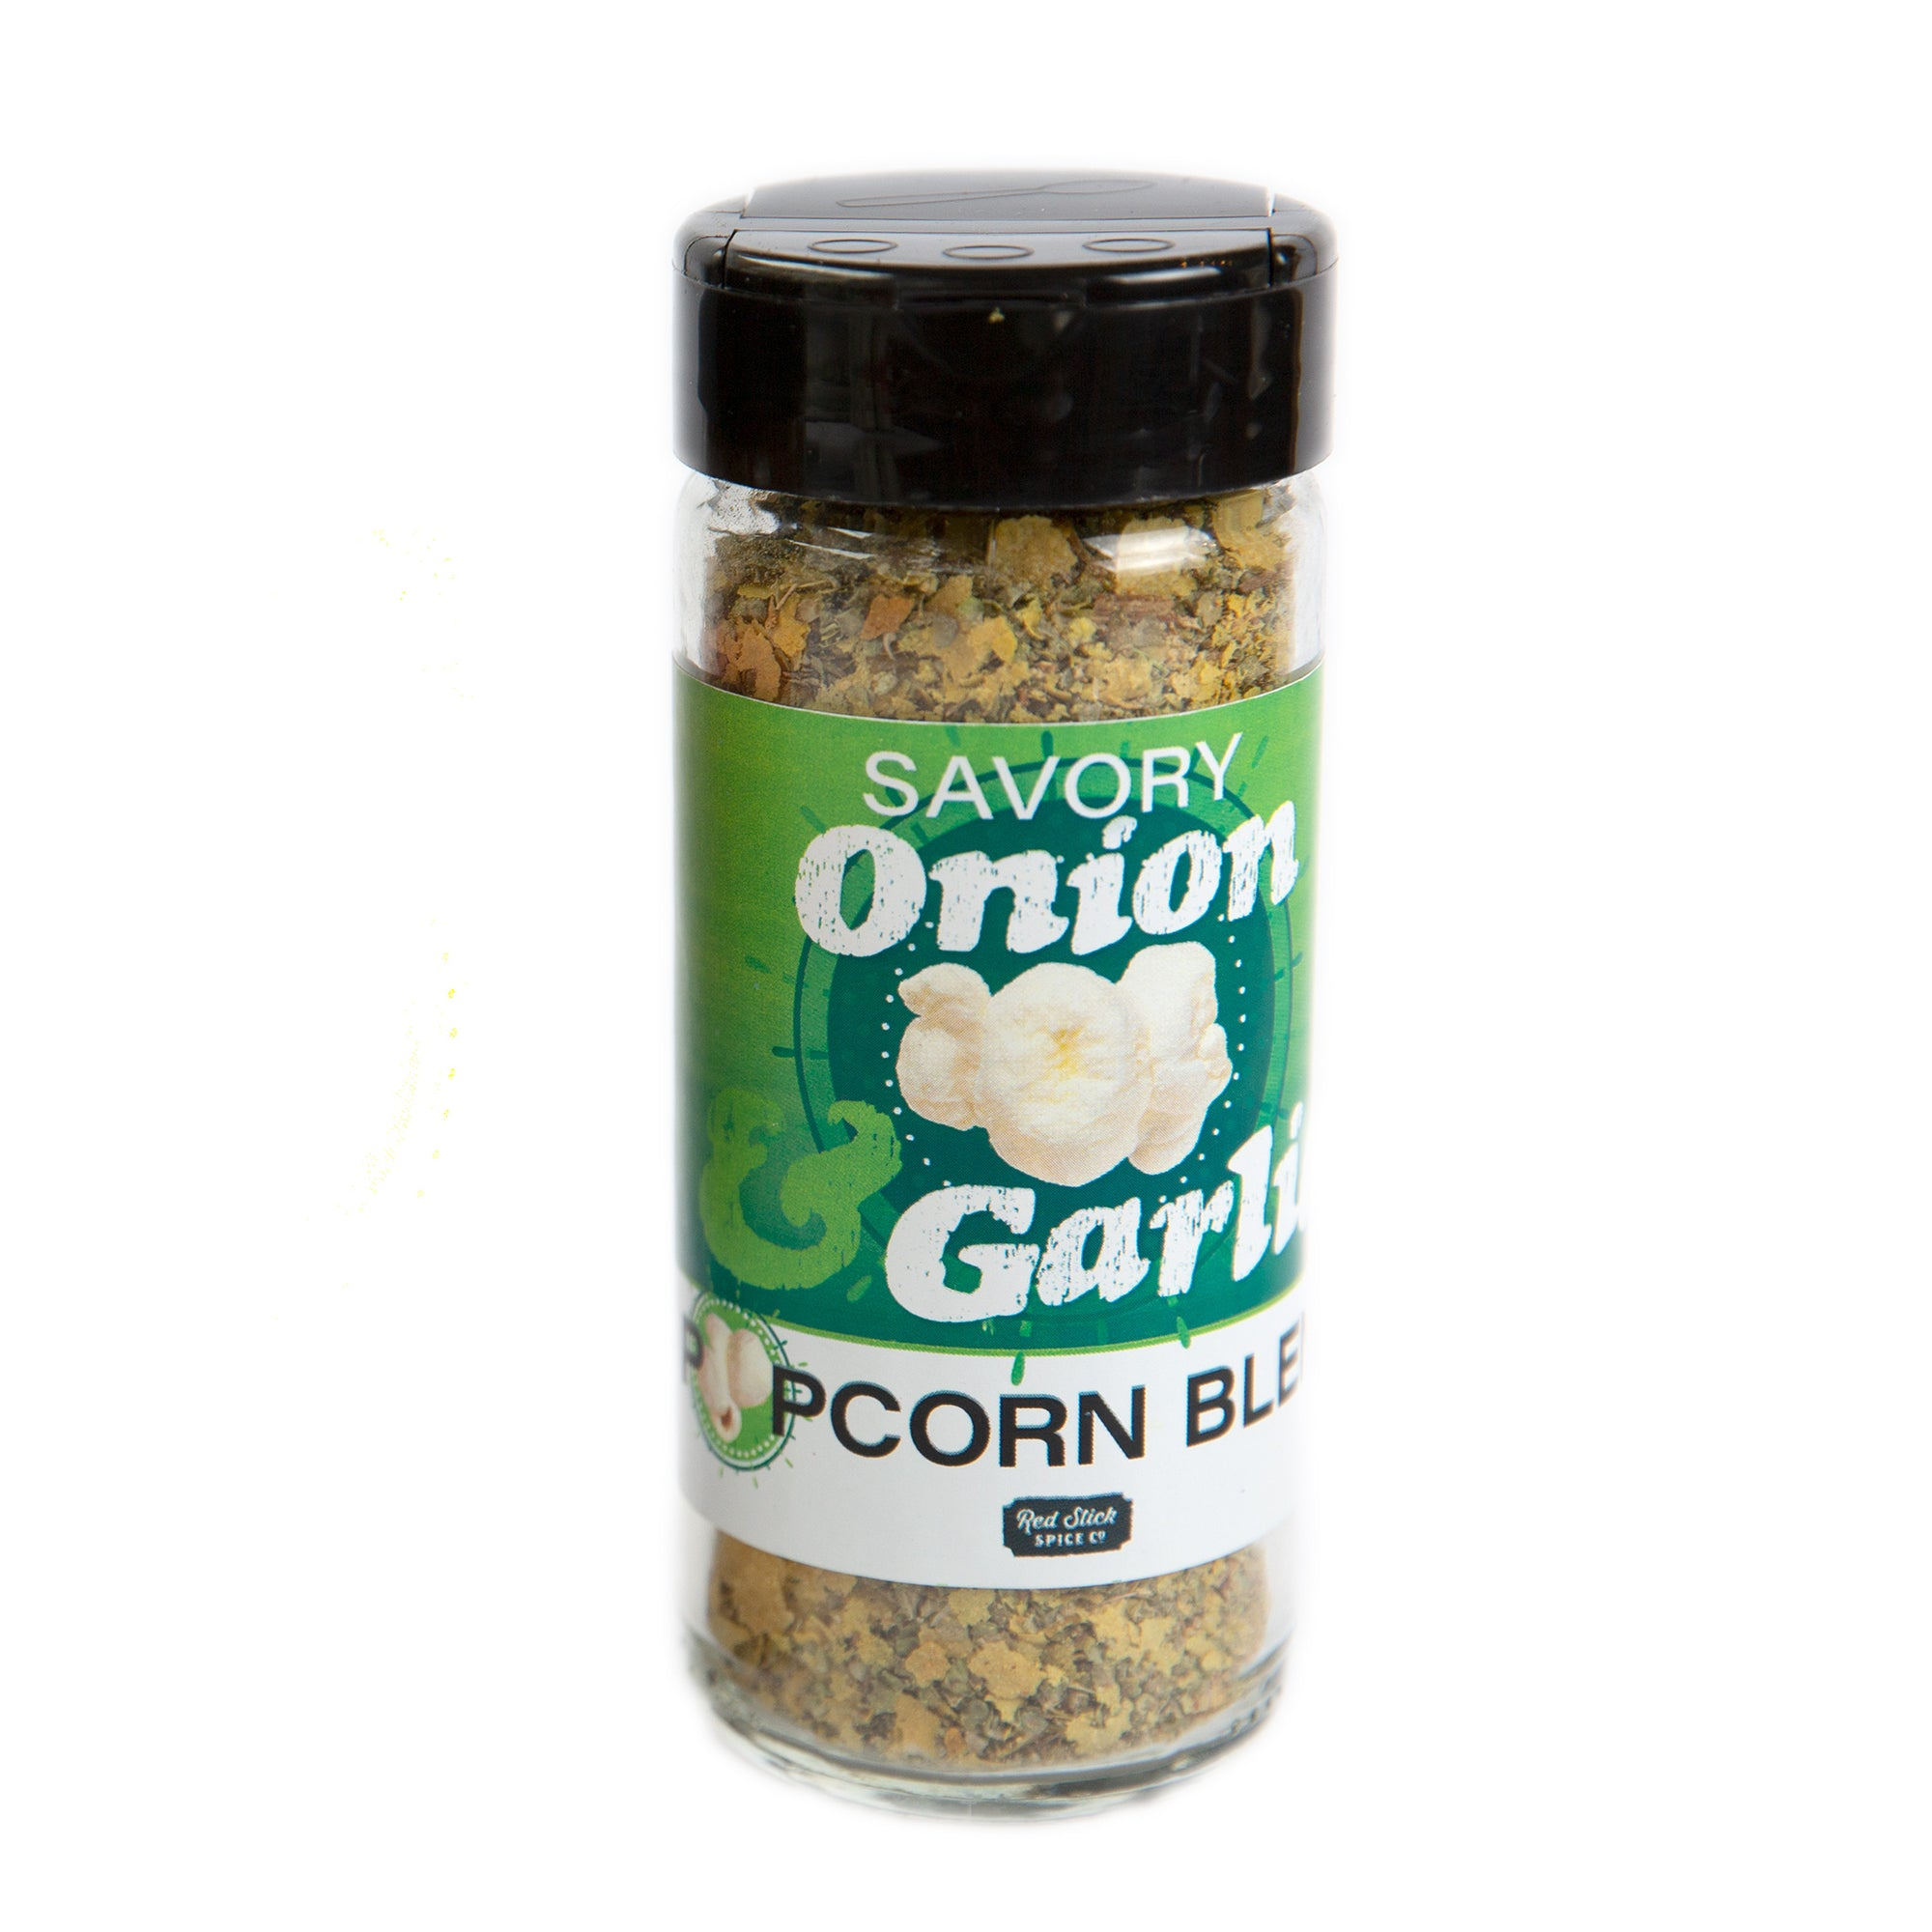 Savory Onion and Garlic Popcorn Blend